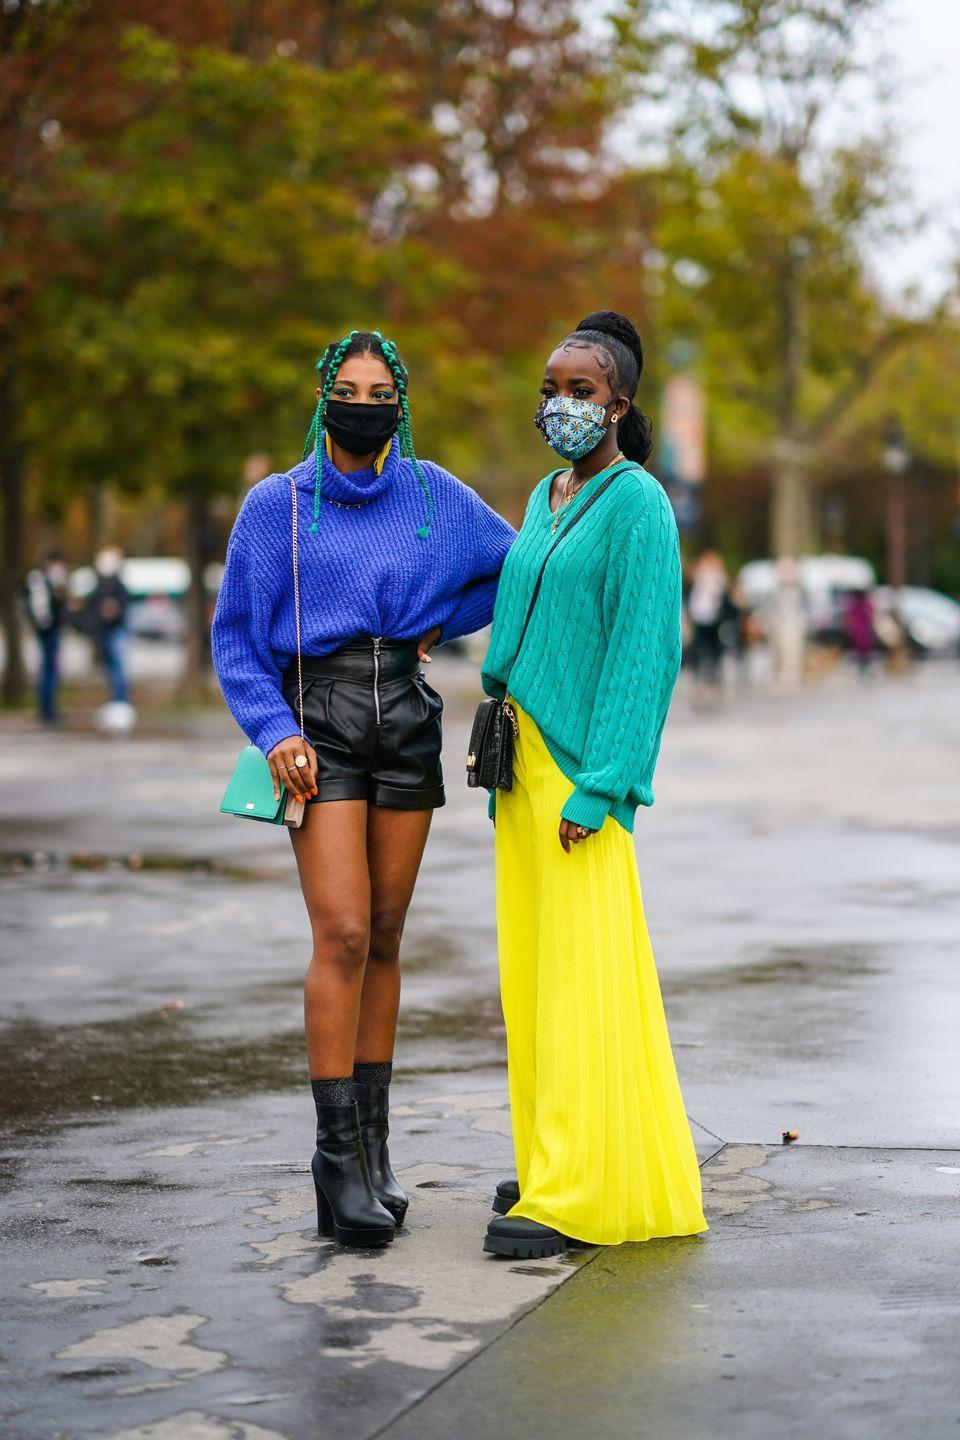 <p>If the weather isn't quite letting us hide away our knitwear yet, opt for brightly coloured, oversized jumpers and cardis. Pair with a leather mini skirt or drape over a floaty maxi dress to keep that spring feeling.</p>